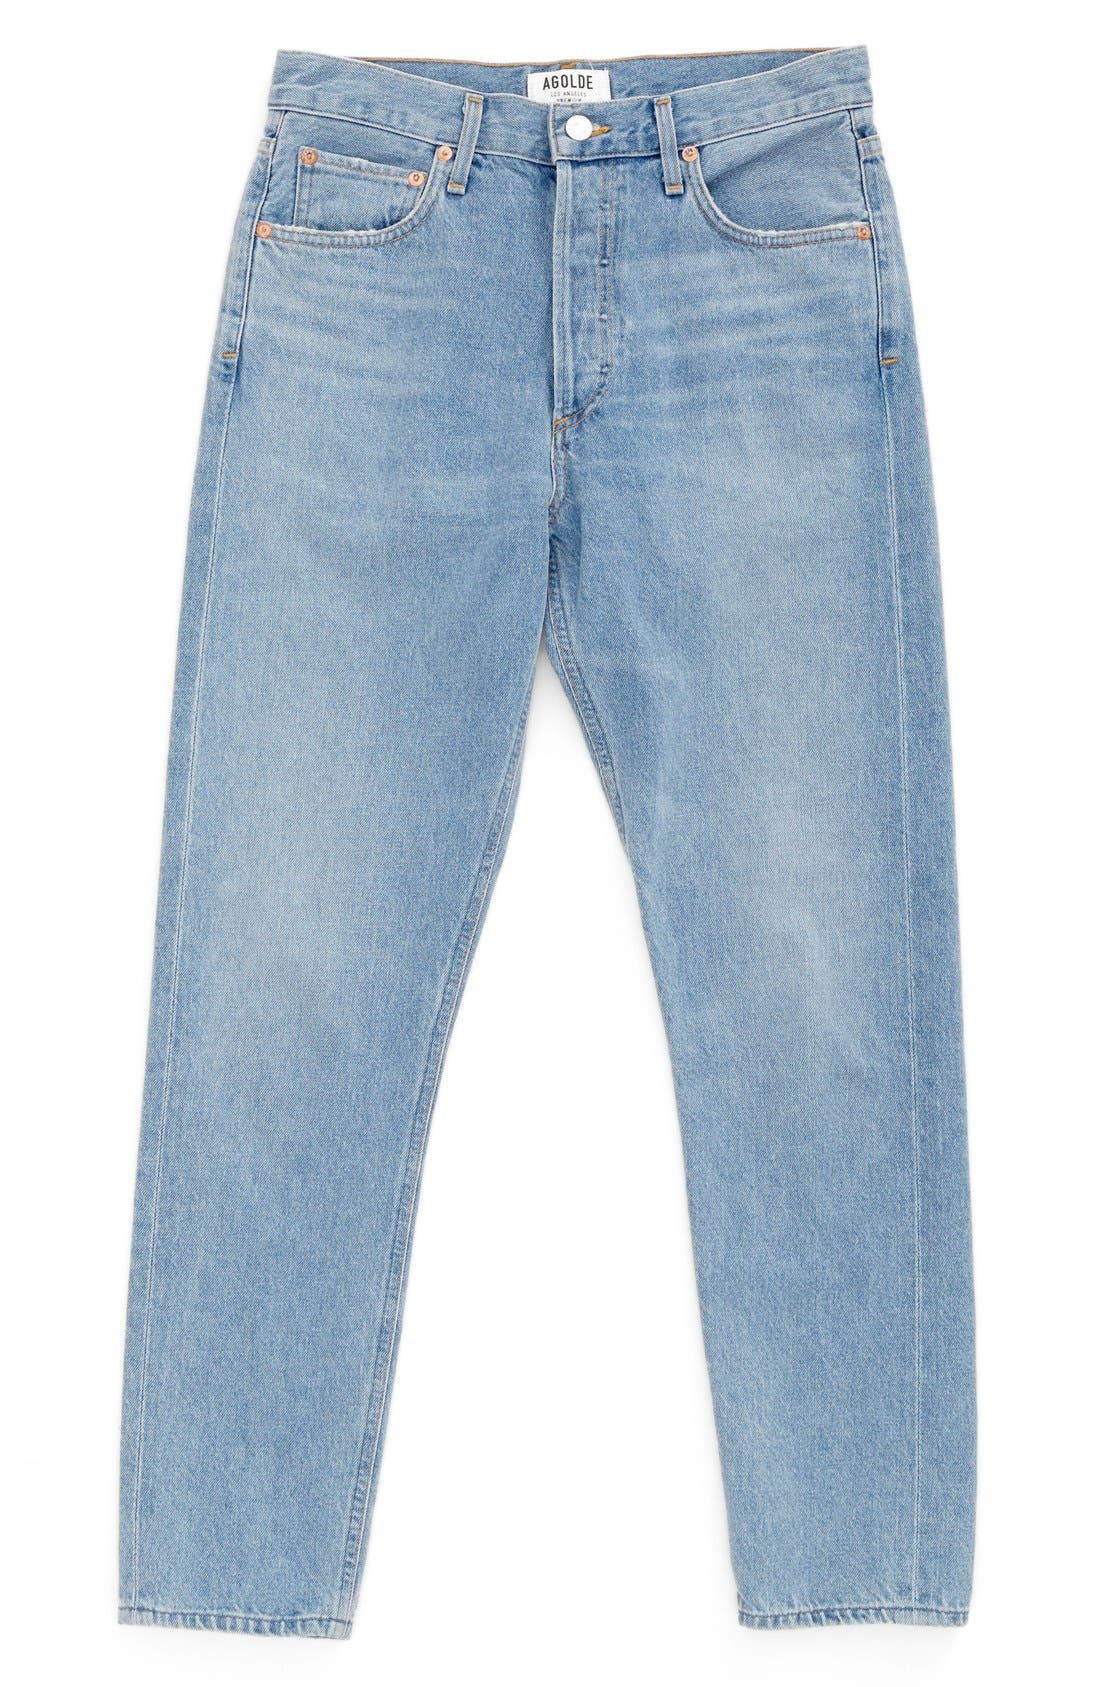 Alternate Image 1 Selected - AGOLDE Jamie High Rise Classic Jeans (Women)